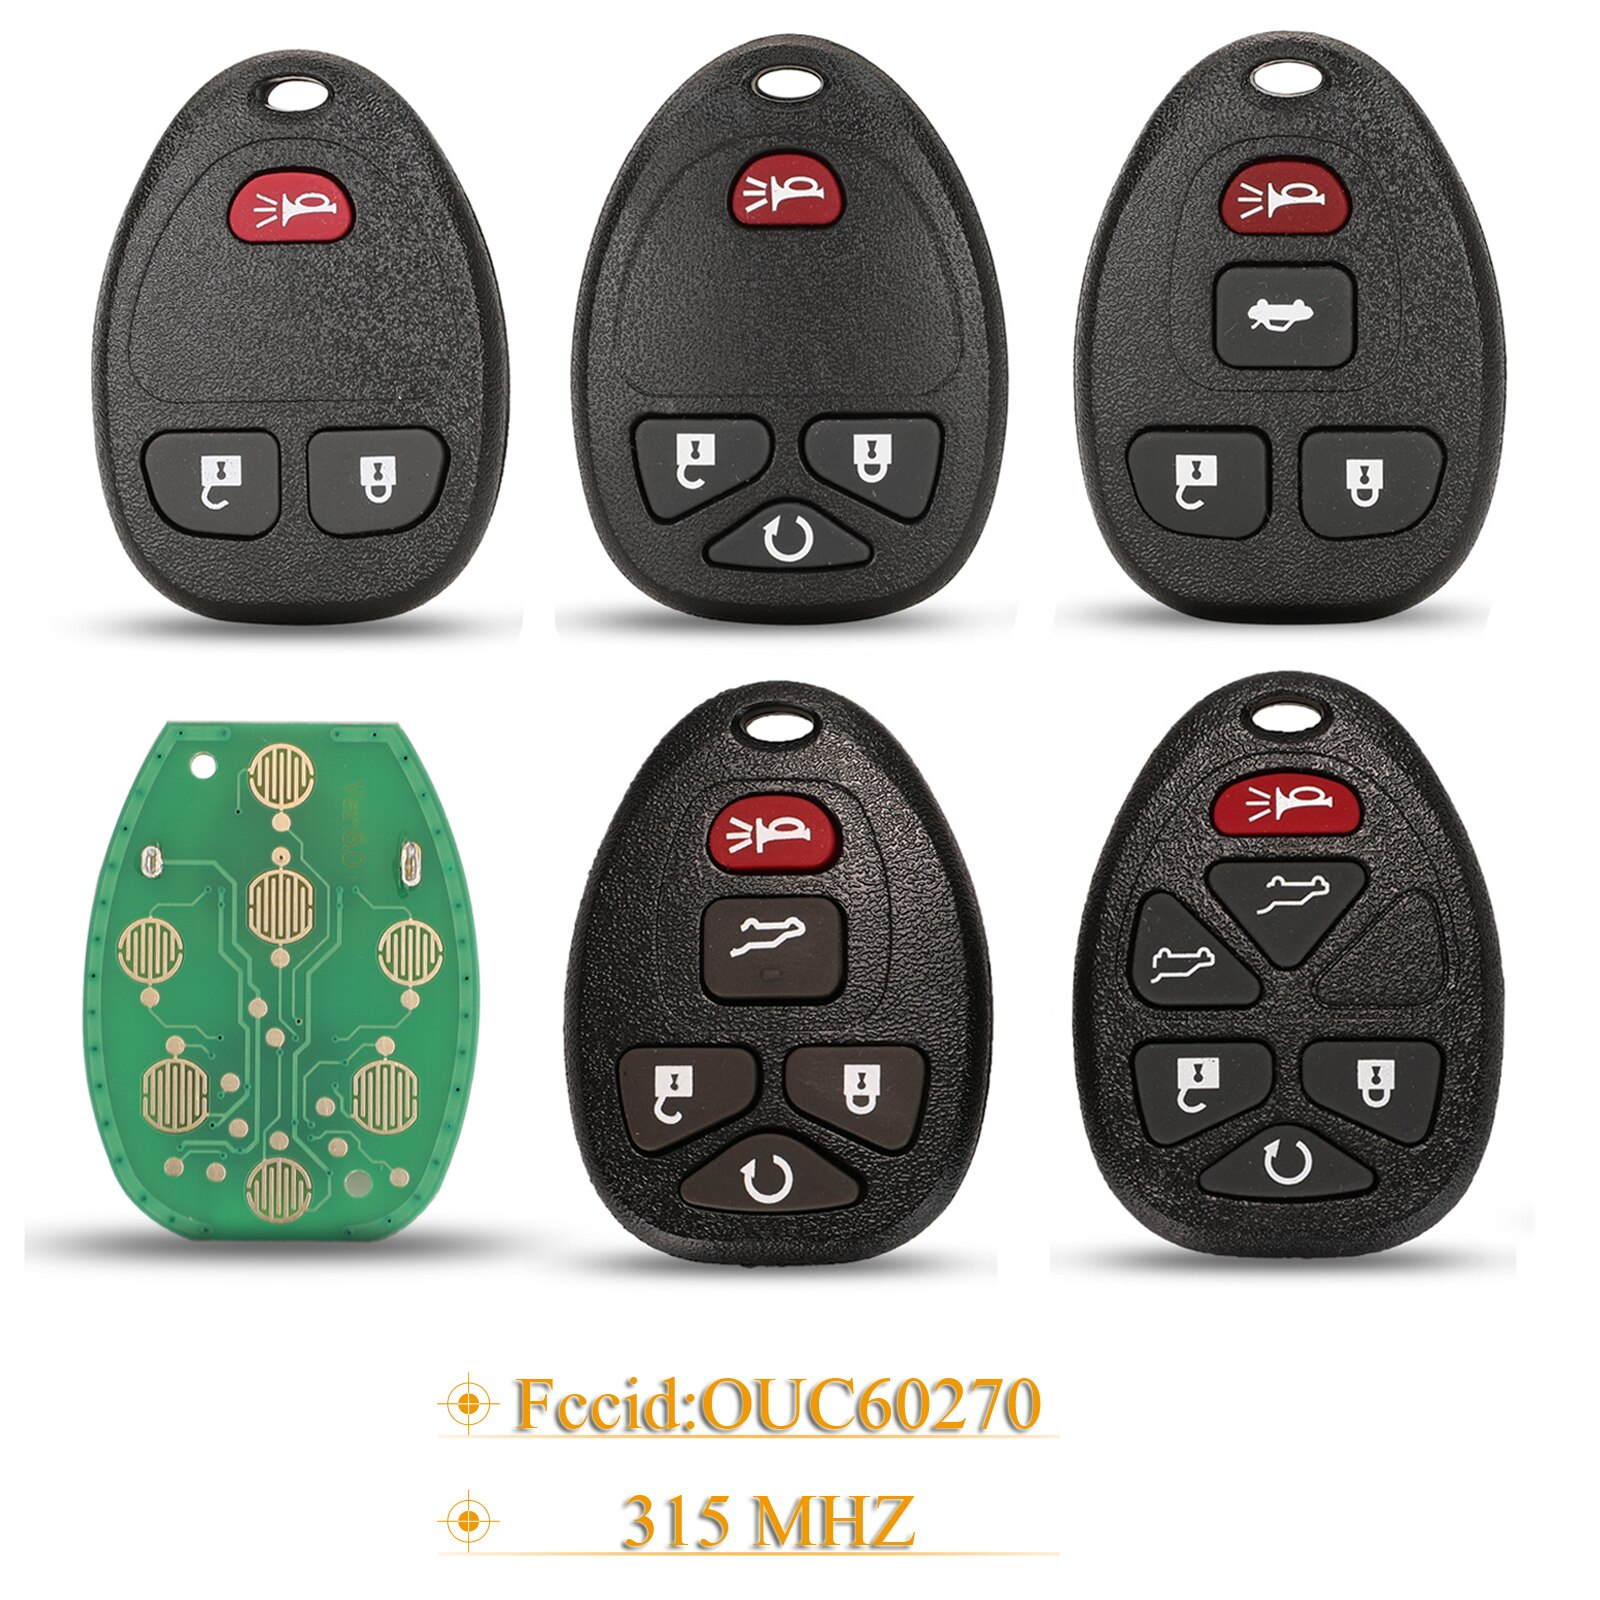 Kutery 3/4/5/6 Buttons Smart Remote Car Key Fob 315Mhz OUC60270 For Chevrolet Tahoe Traverse GMC Yukon 2007 - 2014